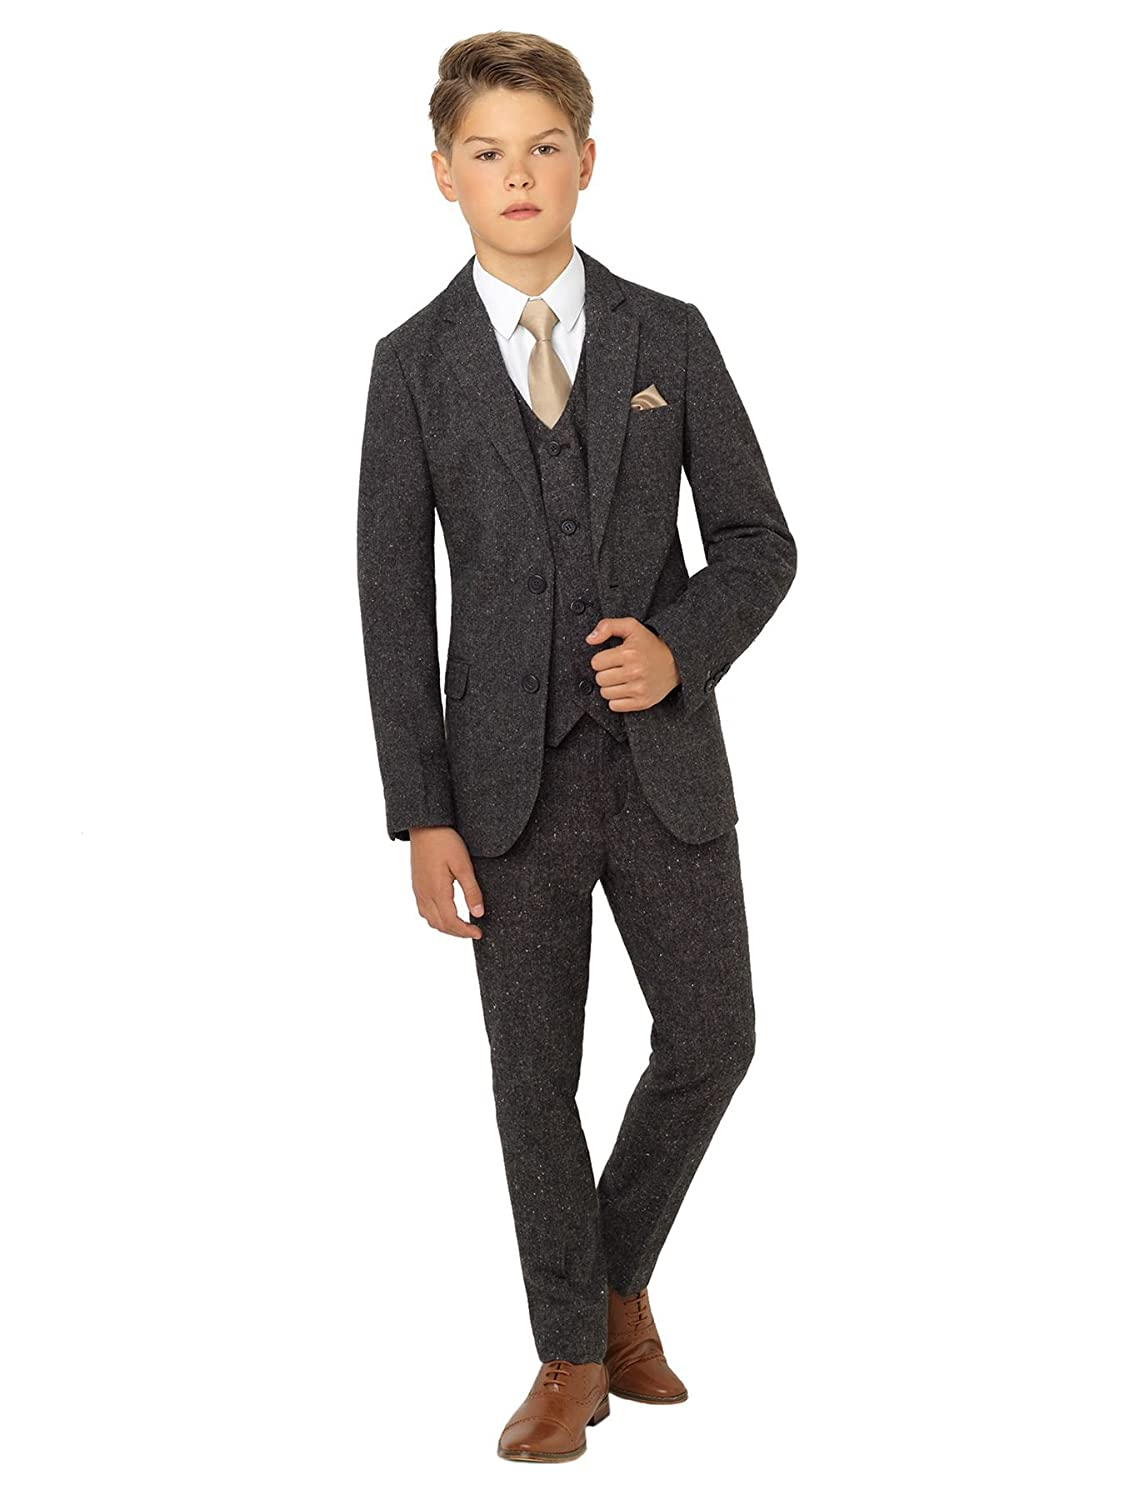 1930s Childrens Fashion: Girls, Boys, Toddler, Baby Costumes Paisley of London Ainsley Tweed Boys Gray Slim Fit Occasion Wear Kids Wedding Suit with Shirt and Gray Vest X-Large to 20 $84.99 AT vintagedancer.com